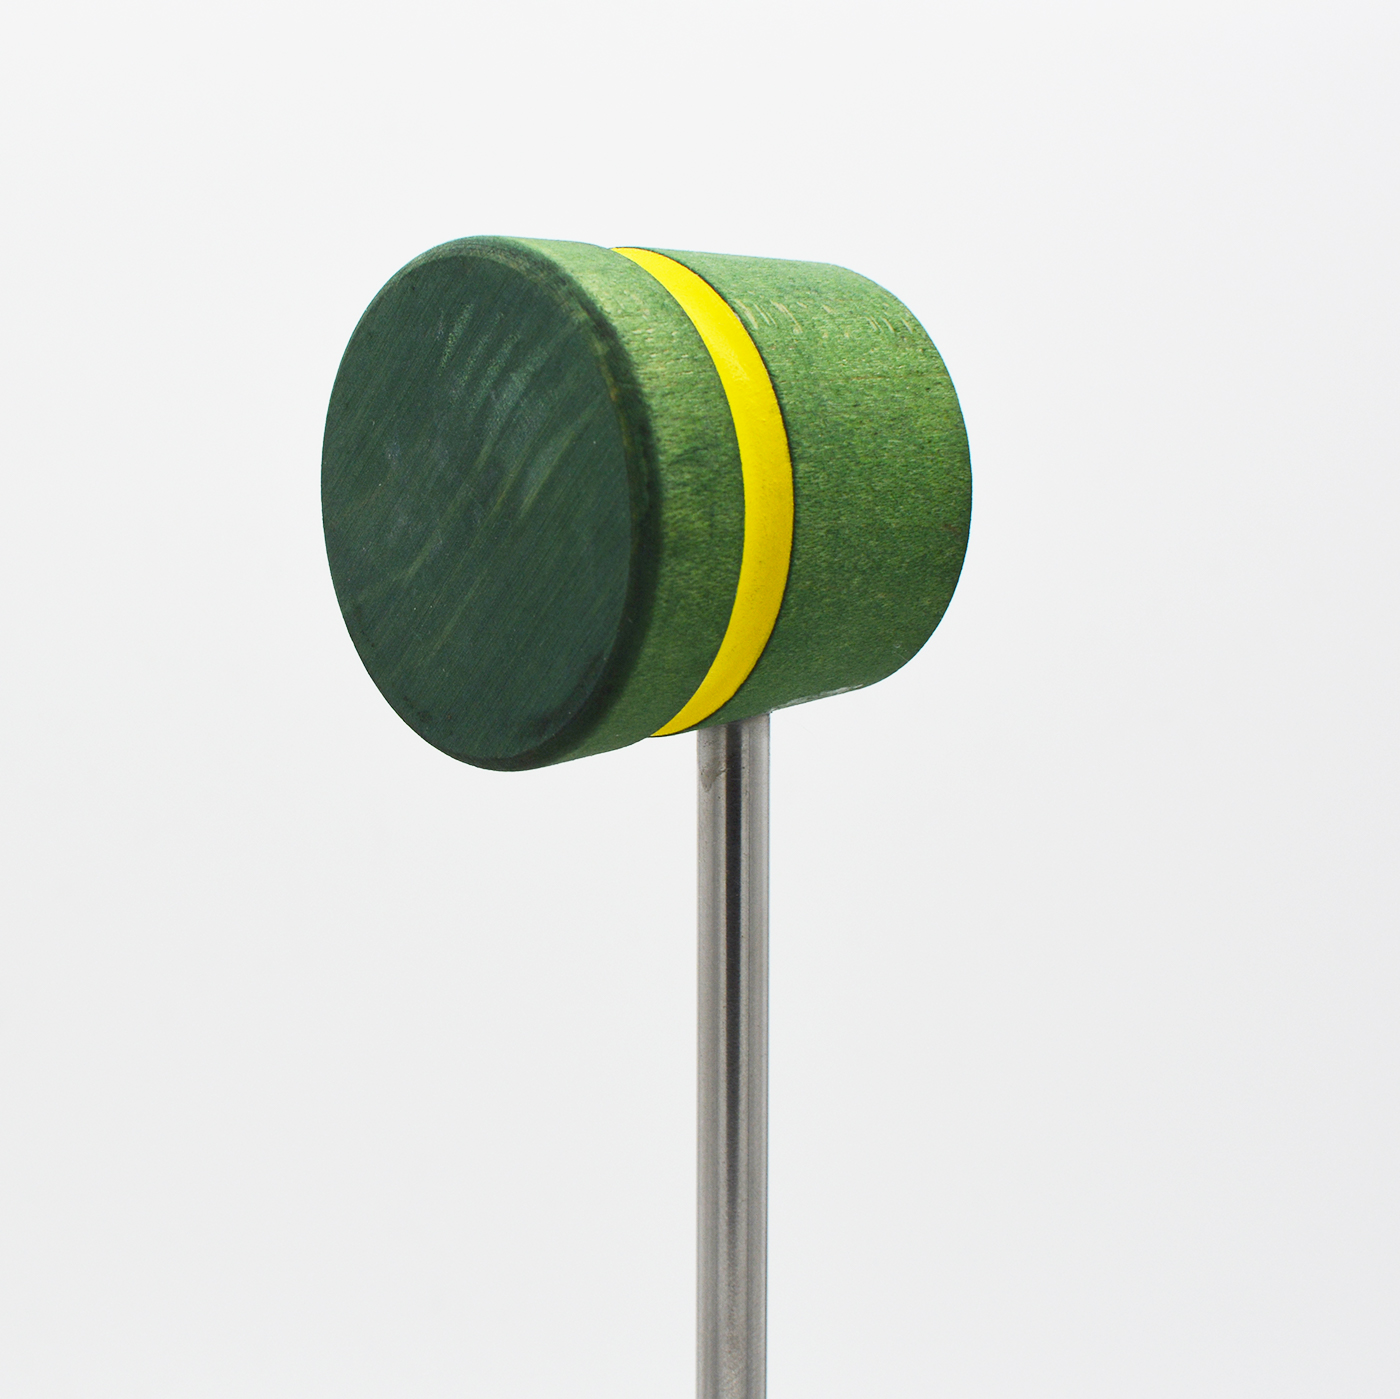 Lightweight, Green with Yellow Stripe